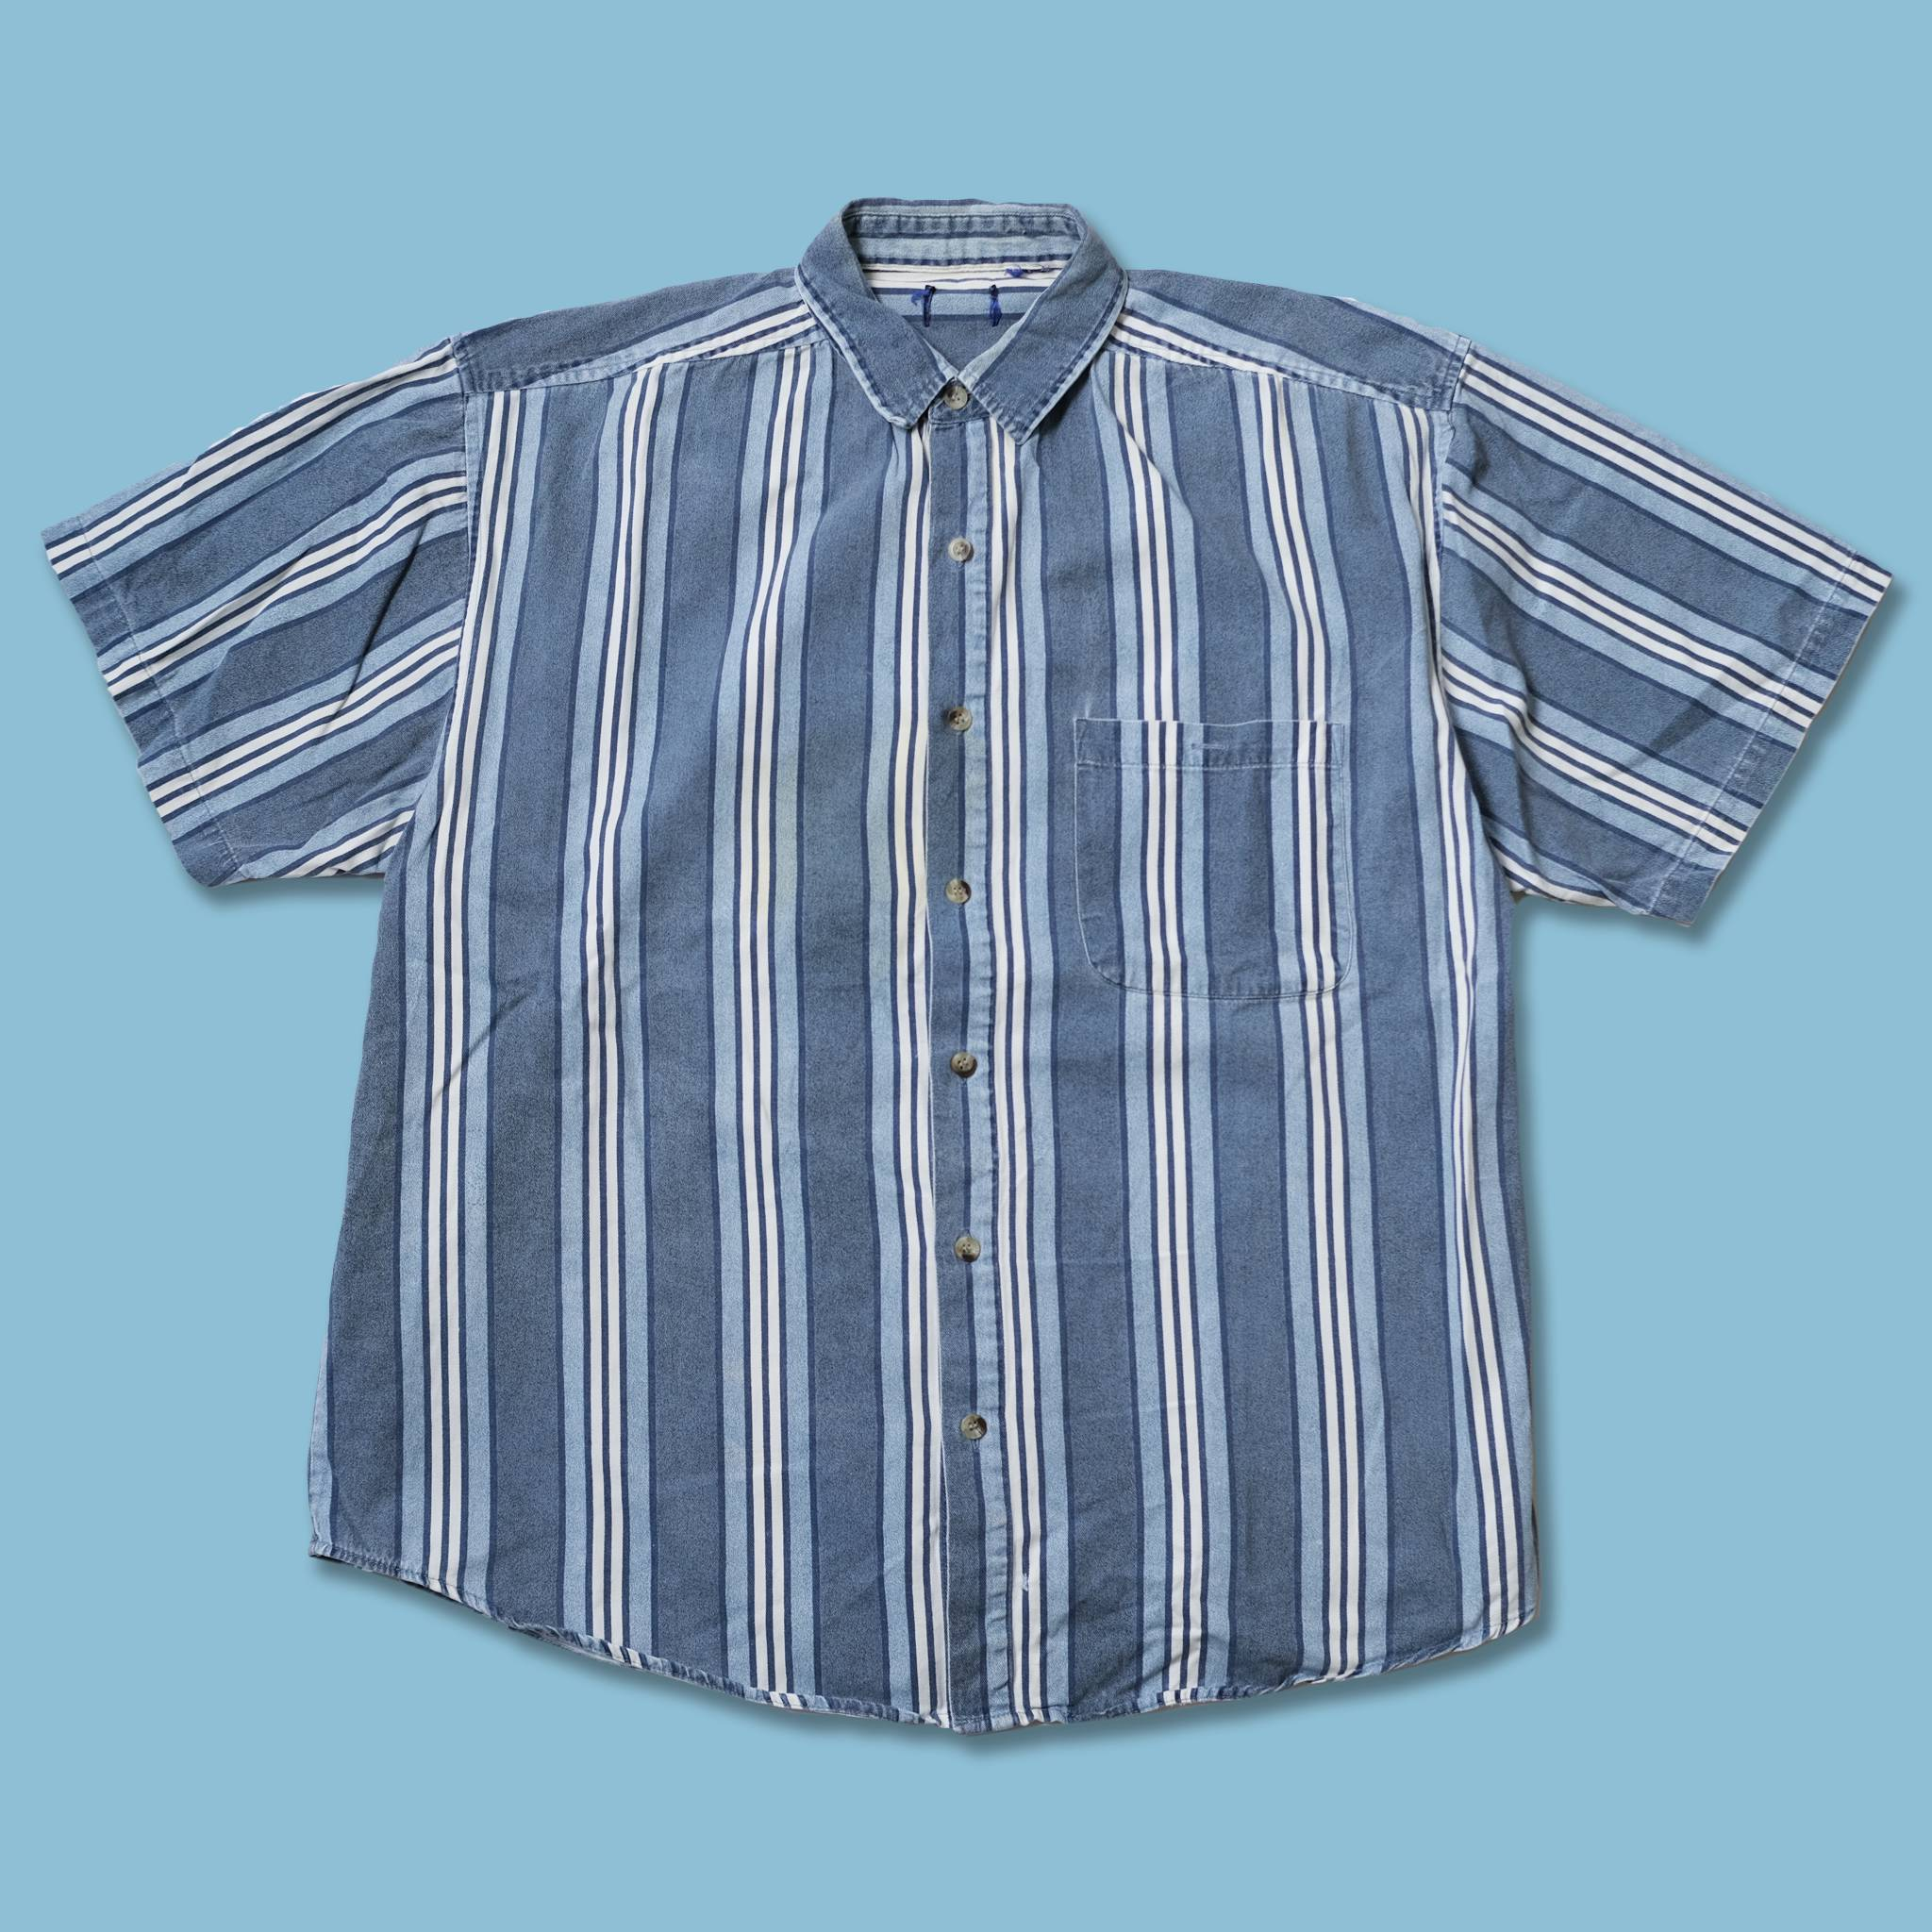 Vintage Vertical Striped Shirt XLarge